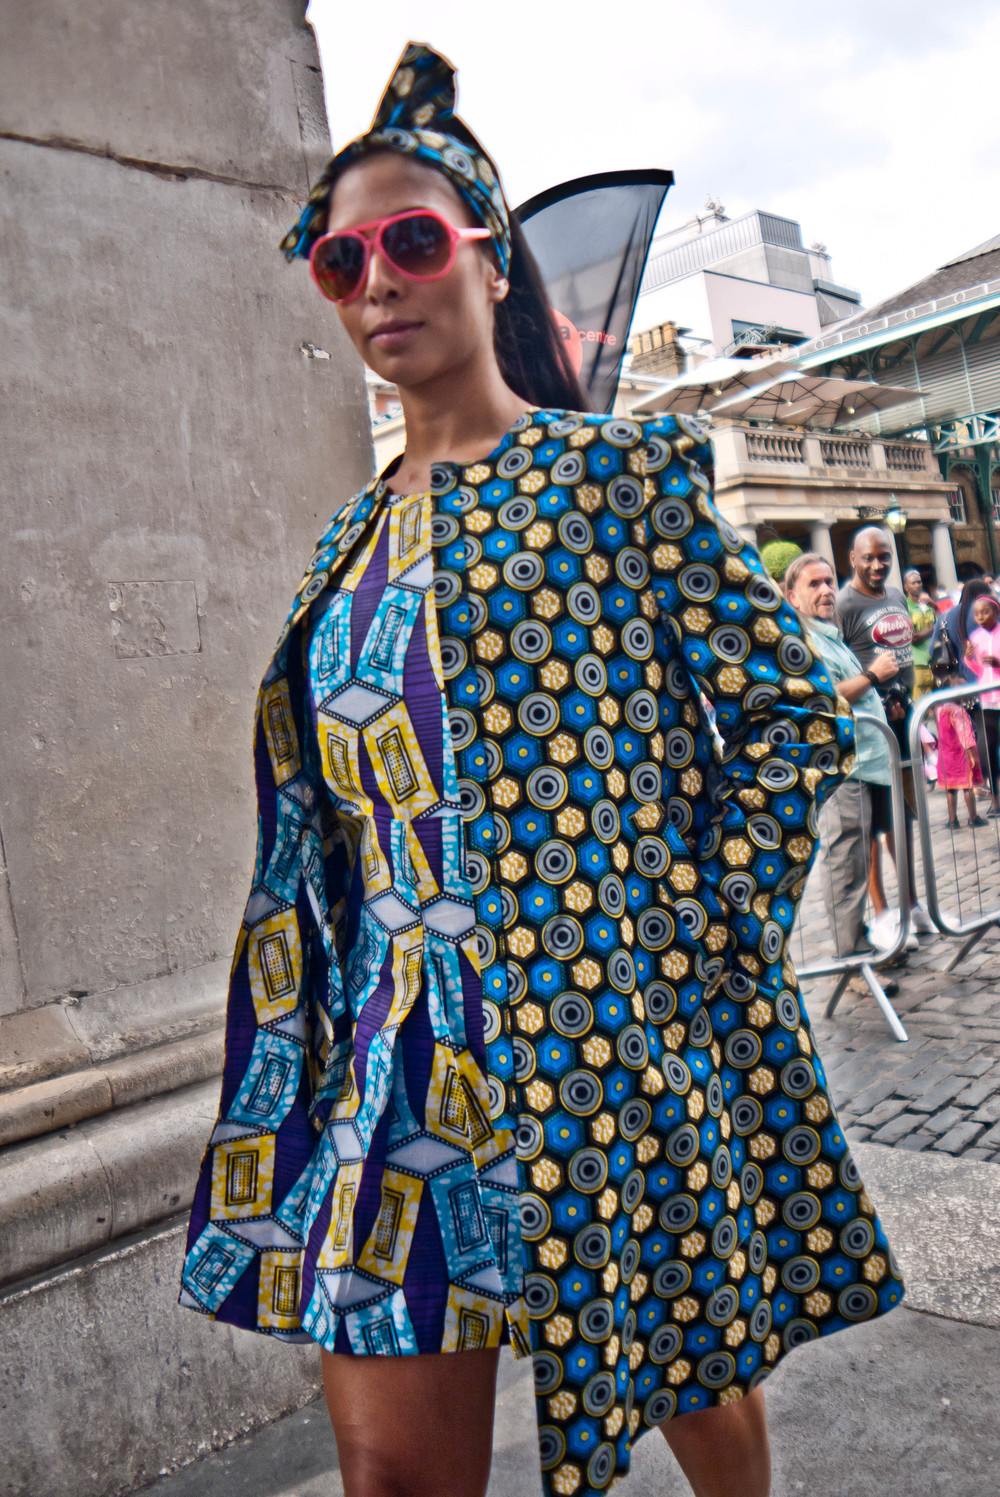 photo credit: STREET FASHION MONITOR - TRIBAL FASHION